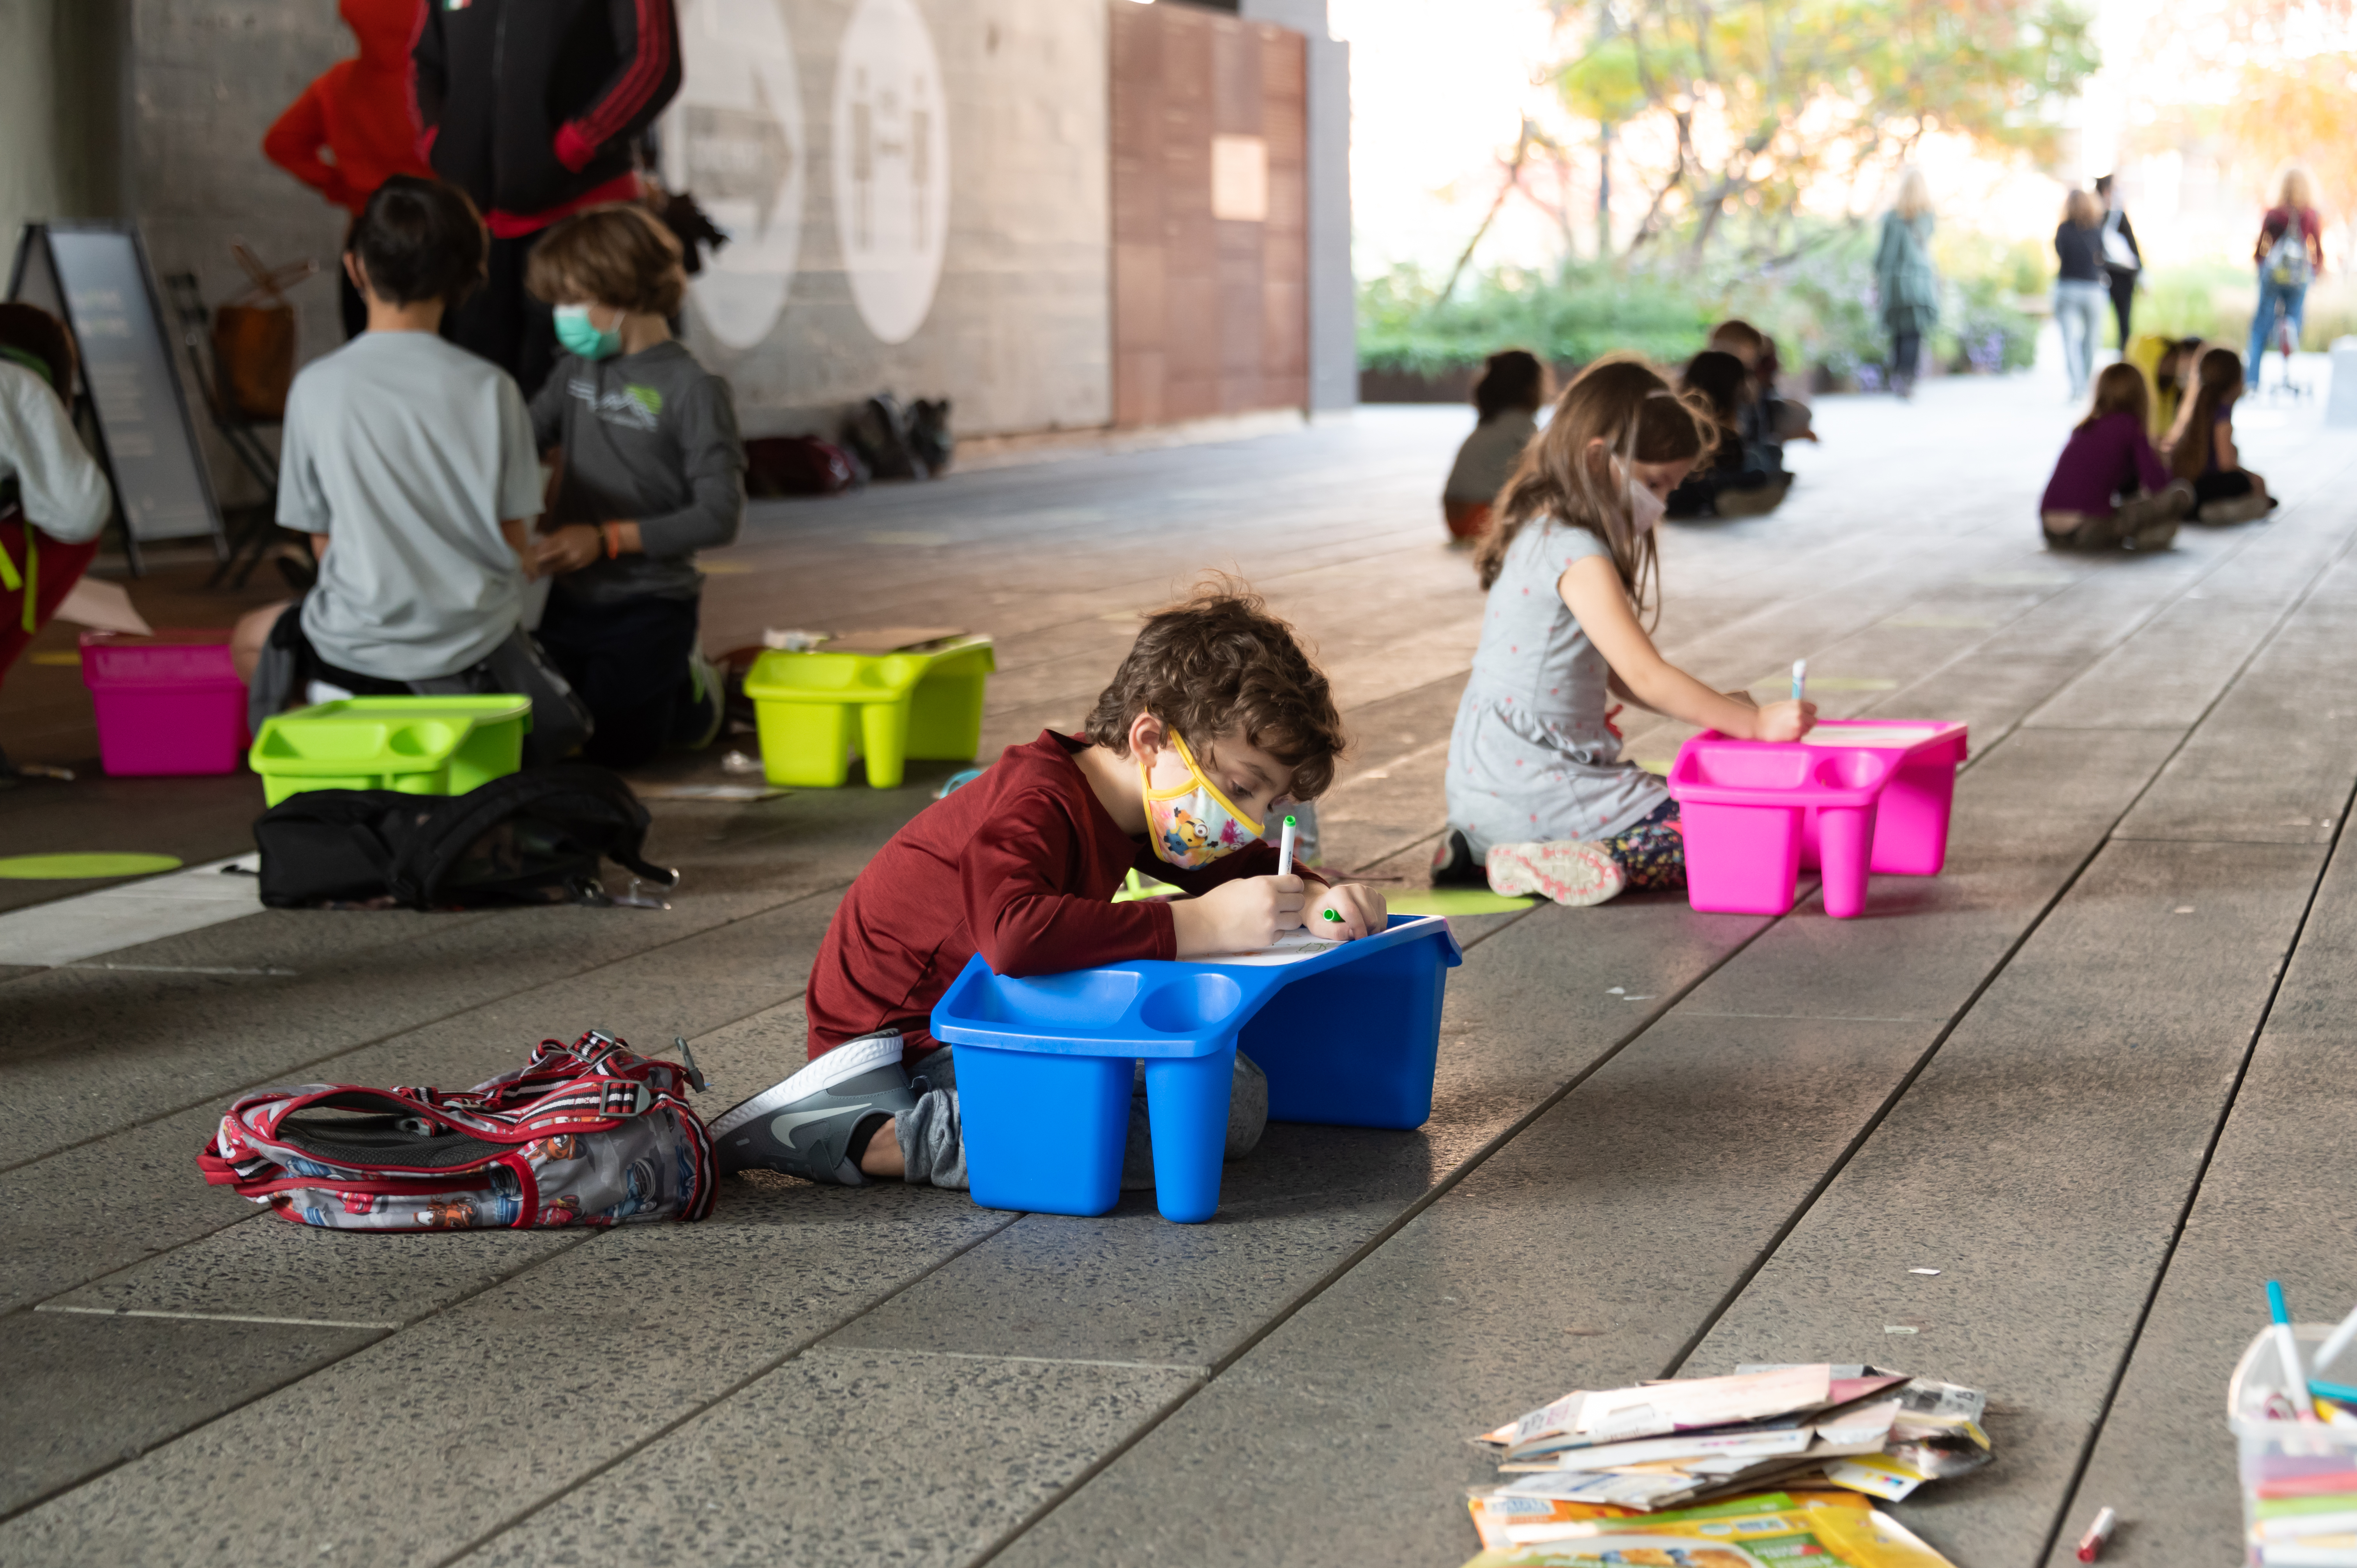 Students from PS 11 in New York City do their lessons outdoors, at the city's High Line park, on Oct. 21, 2020.